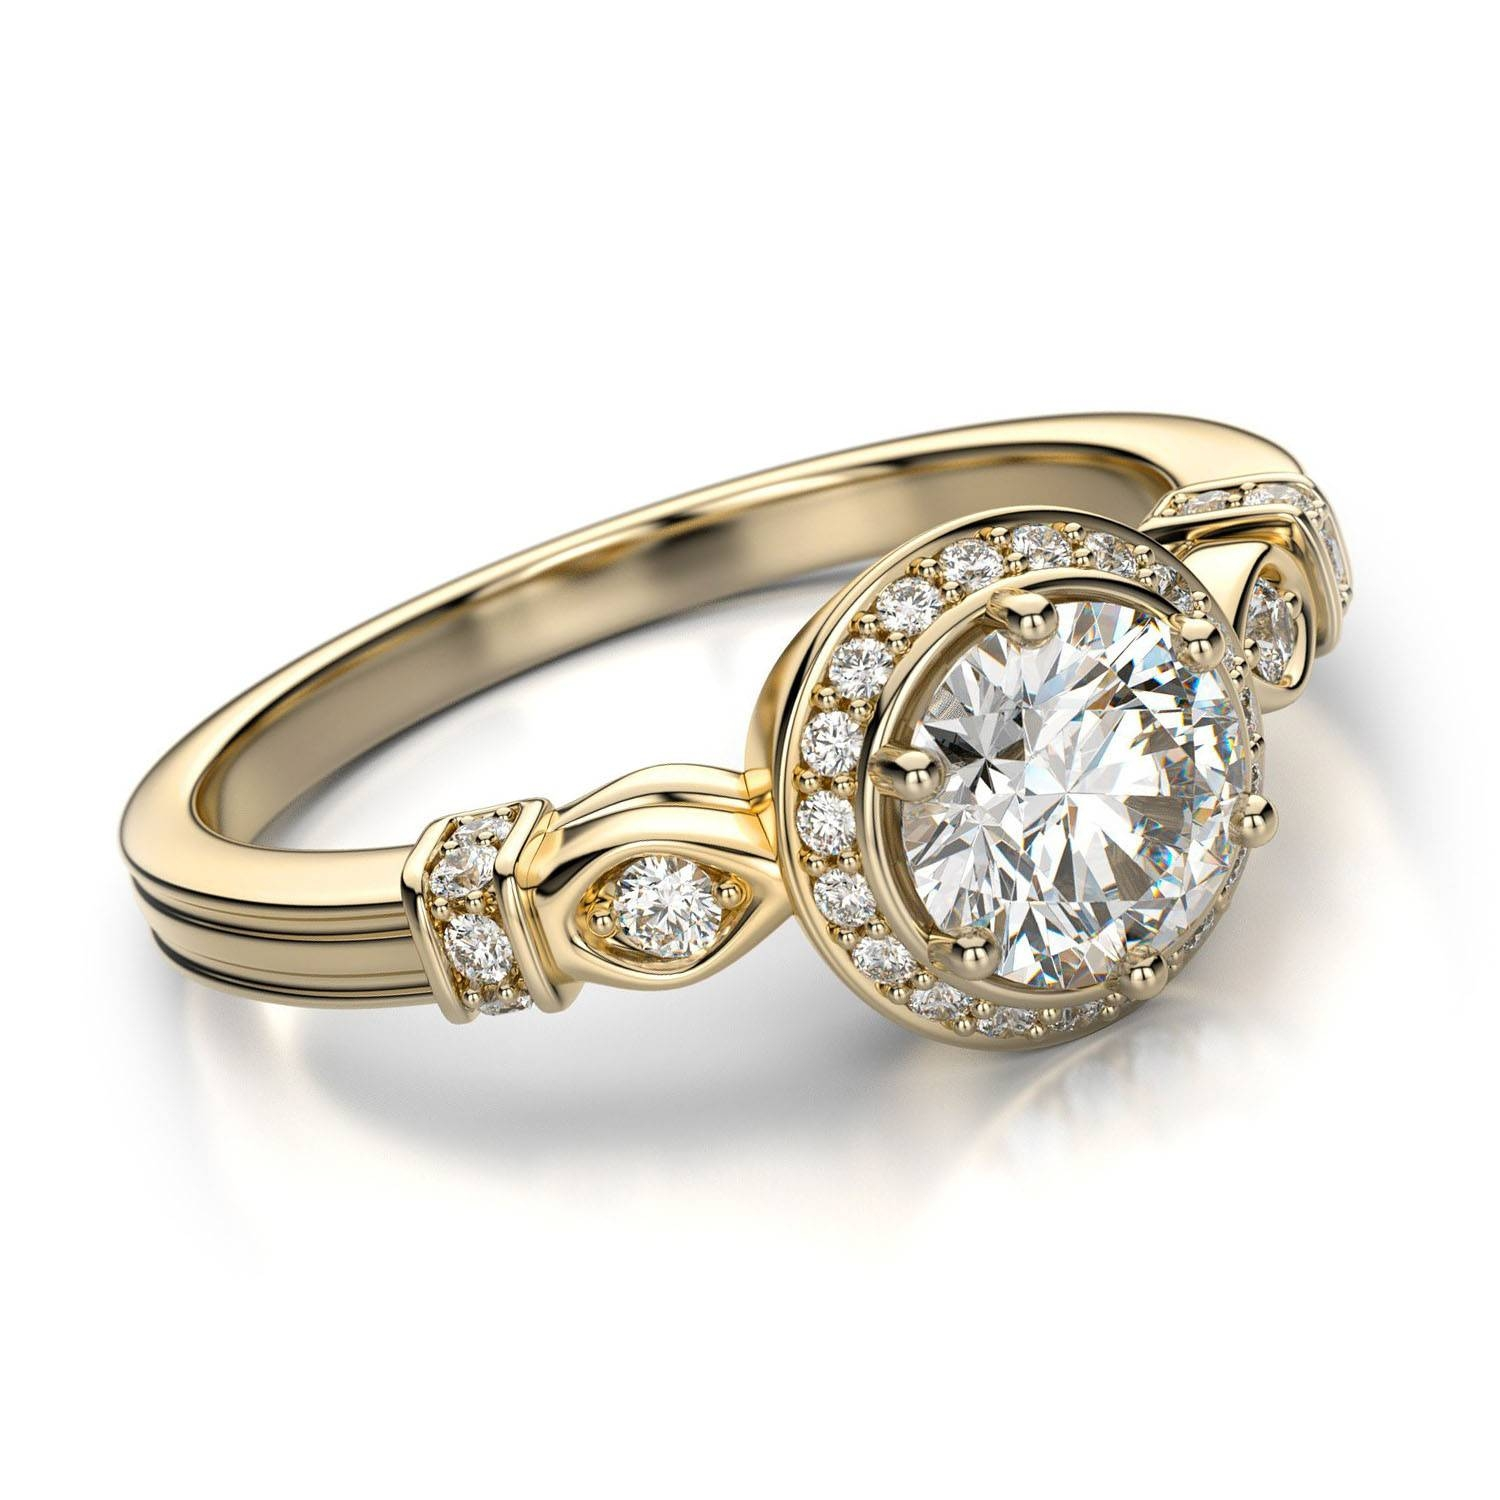 hh cheap in inexpensive jewellery engagement unique rings wedding melbourne discounted